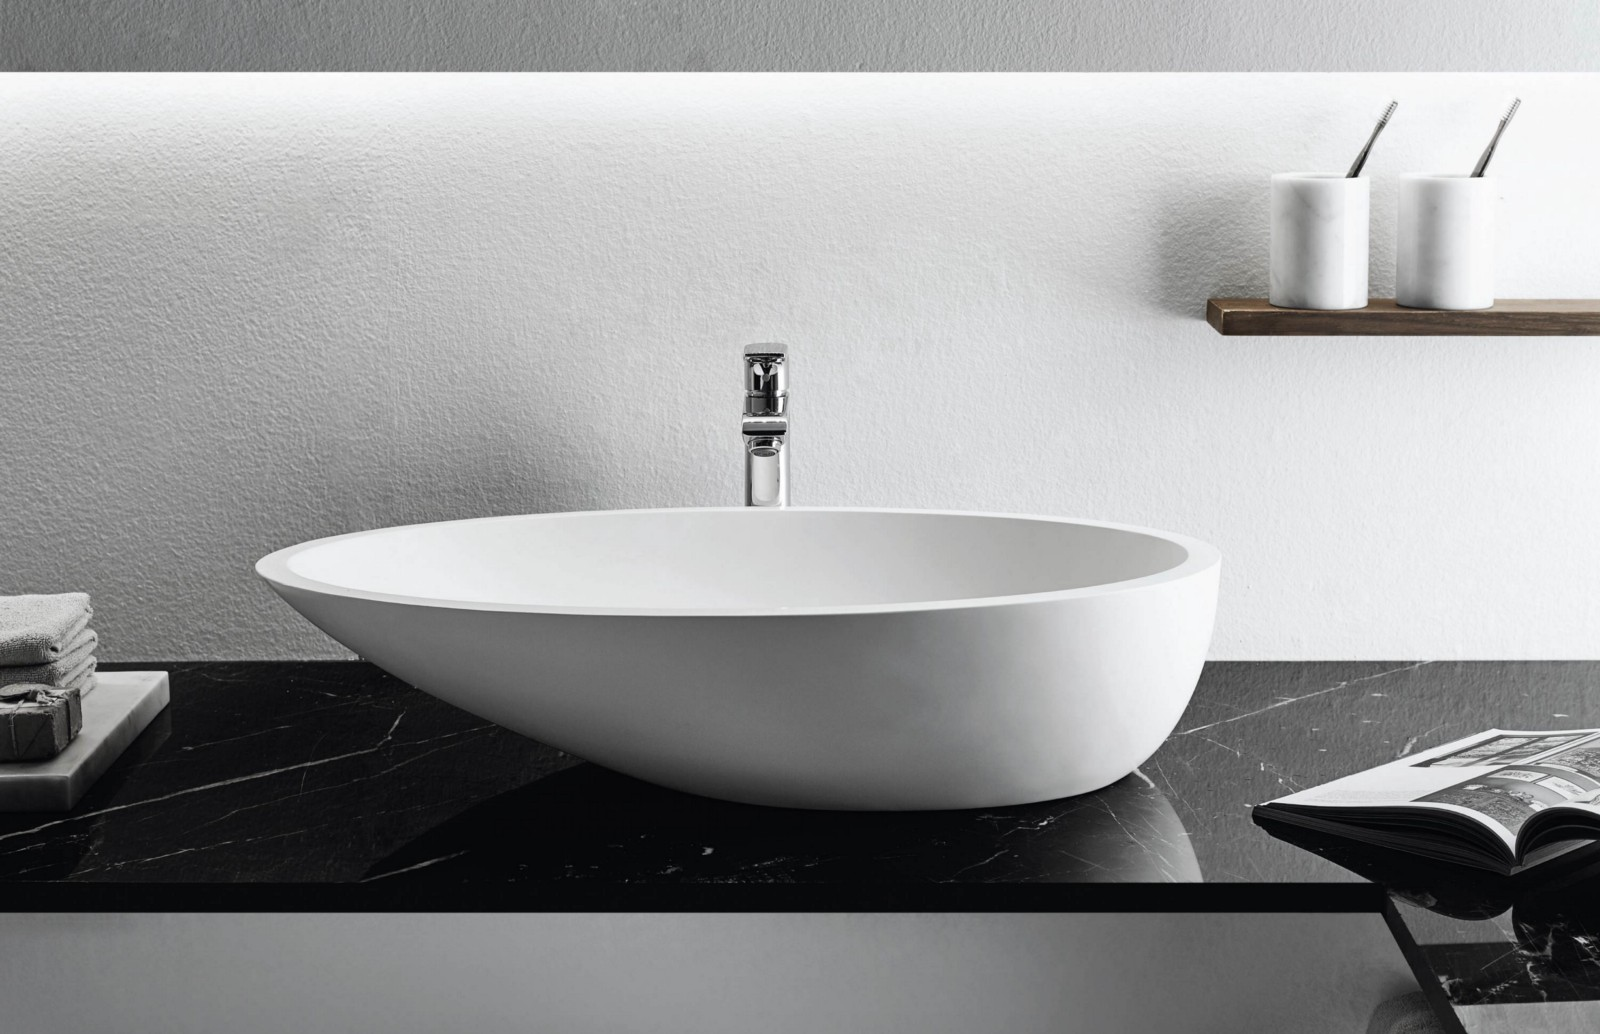 Superieur A Significant Part Of Your Toilet Installation, A Bathroom Basin/sink Will  Have An Actual Have An Impact On Your Bathroomu0027s Universal Experience.